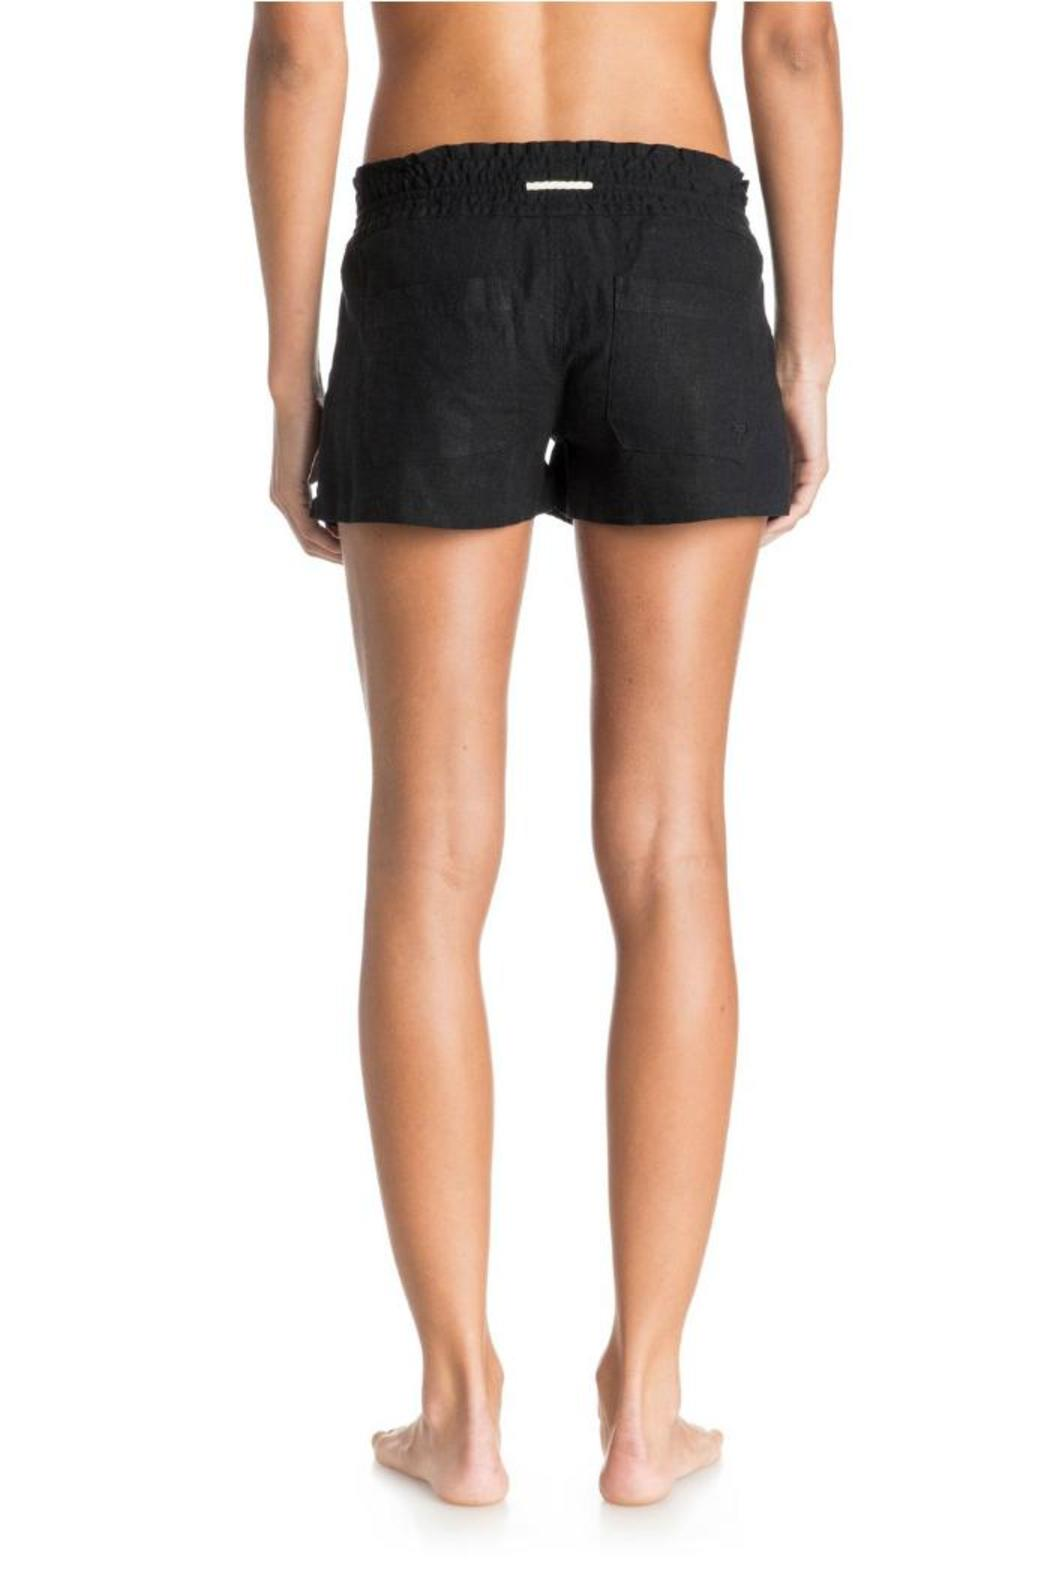 Roxy Oceanside Beach Shorts - Side Cropped Image